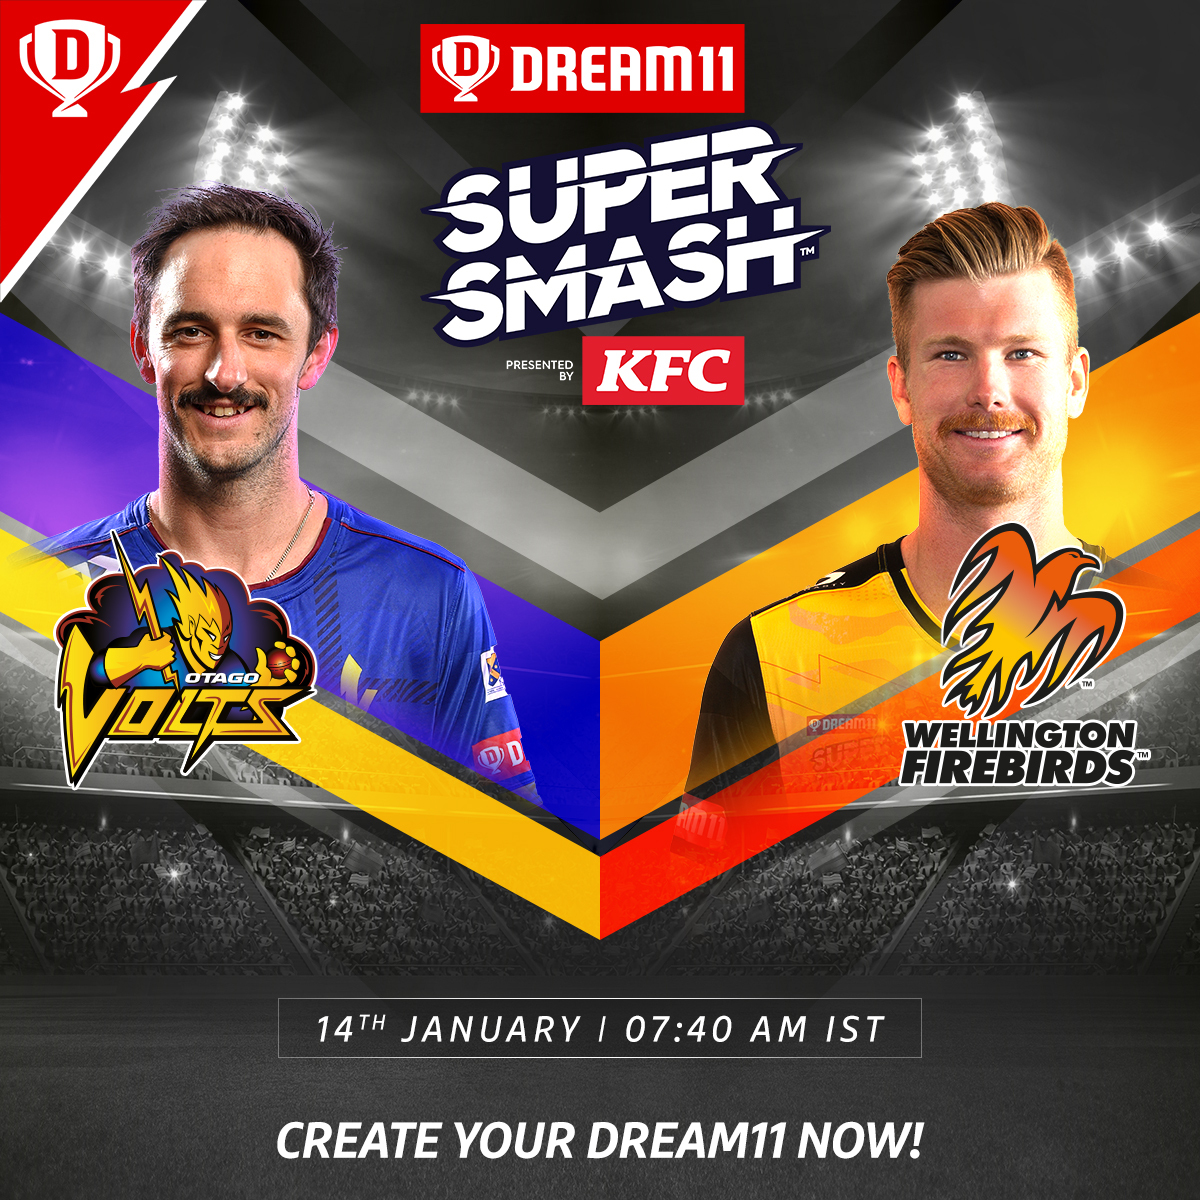 Can #OtagoVolts stop the winning juggernaut of #WellingtonFirebirds when they meet tomorrow in the #Dream11 @SuperSmashNZ? 👀👊  Download the app and create your teams now. Visit: . #SuperSmashNZ